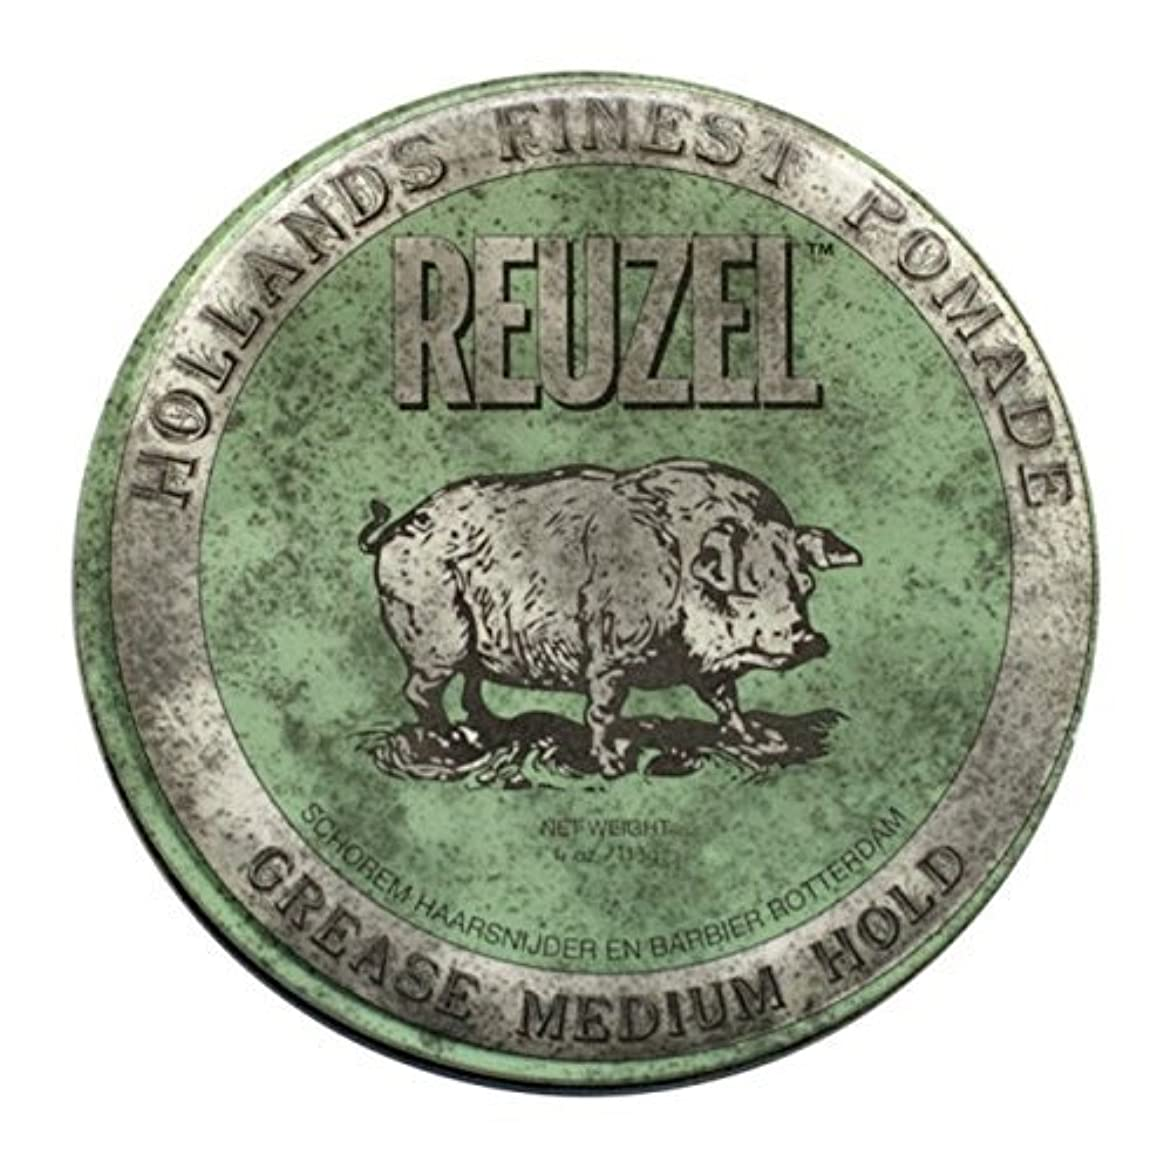 バングラデシュ一時的床Reuzel Green Grease Medium Hold Hair Styling Pomade Piglet 1.3oz (35g) Wax/Gel by Reuzel